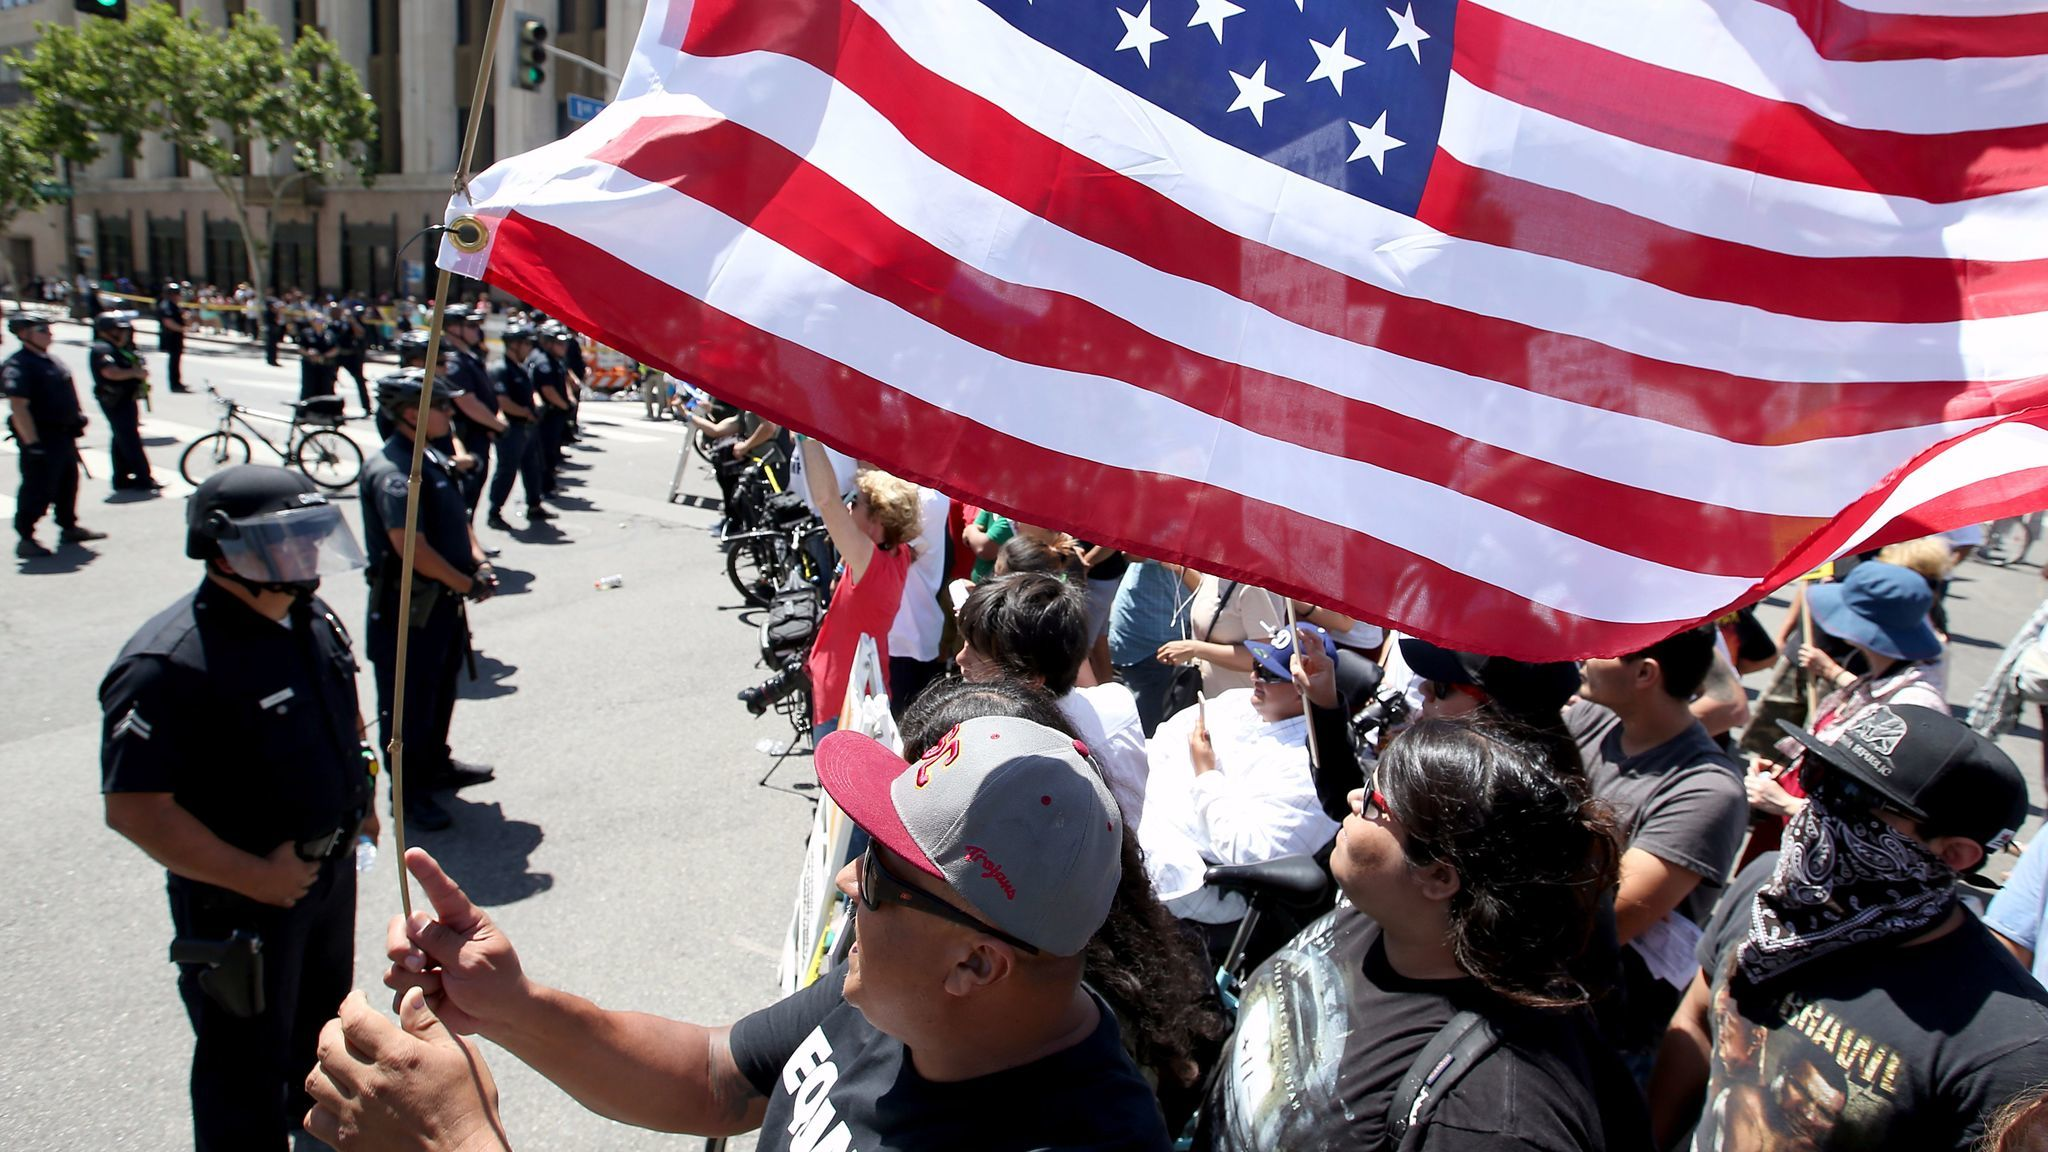 Anti-Trump protesters yell across the street at supporters of the president as separate May Day marches and rallies converge at 1st and Spring streets in downtown Los Angeles.